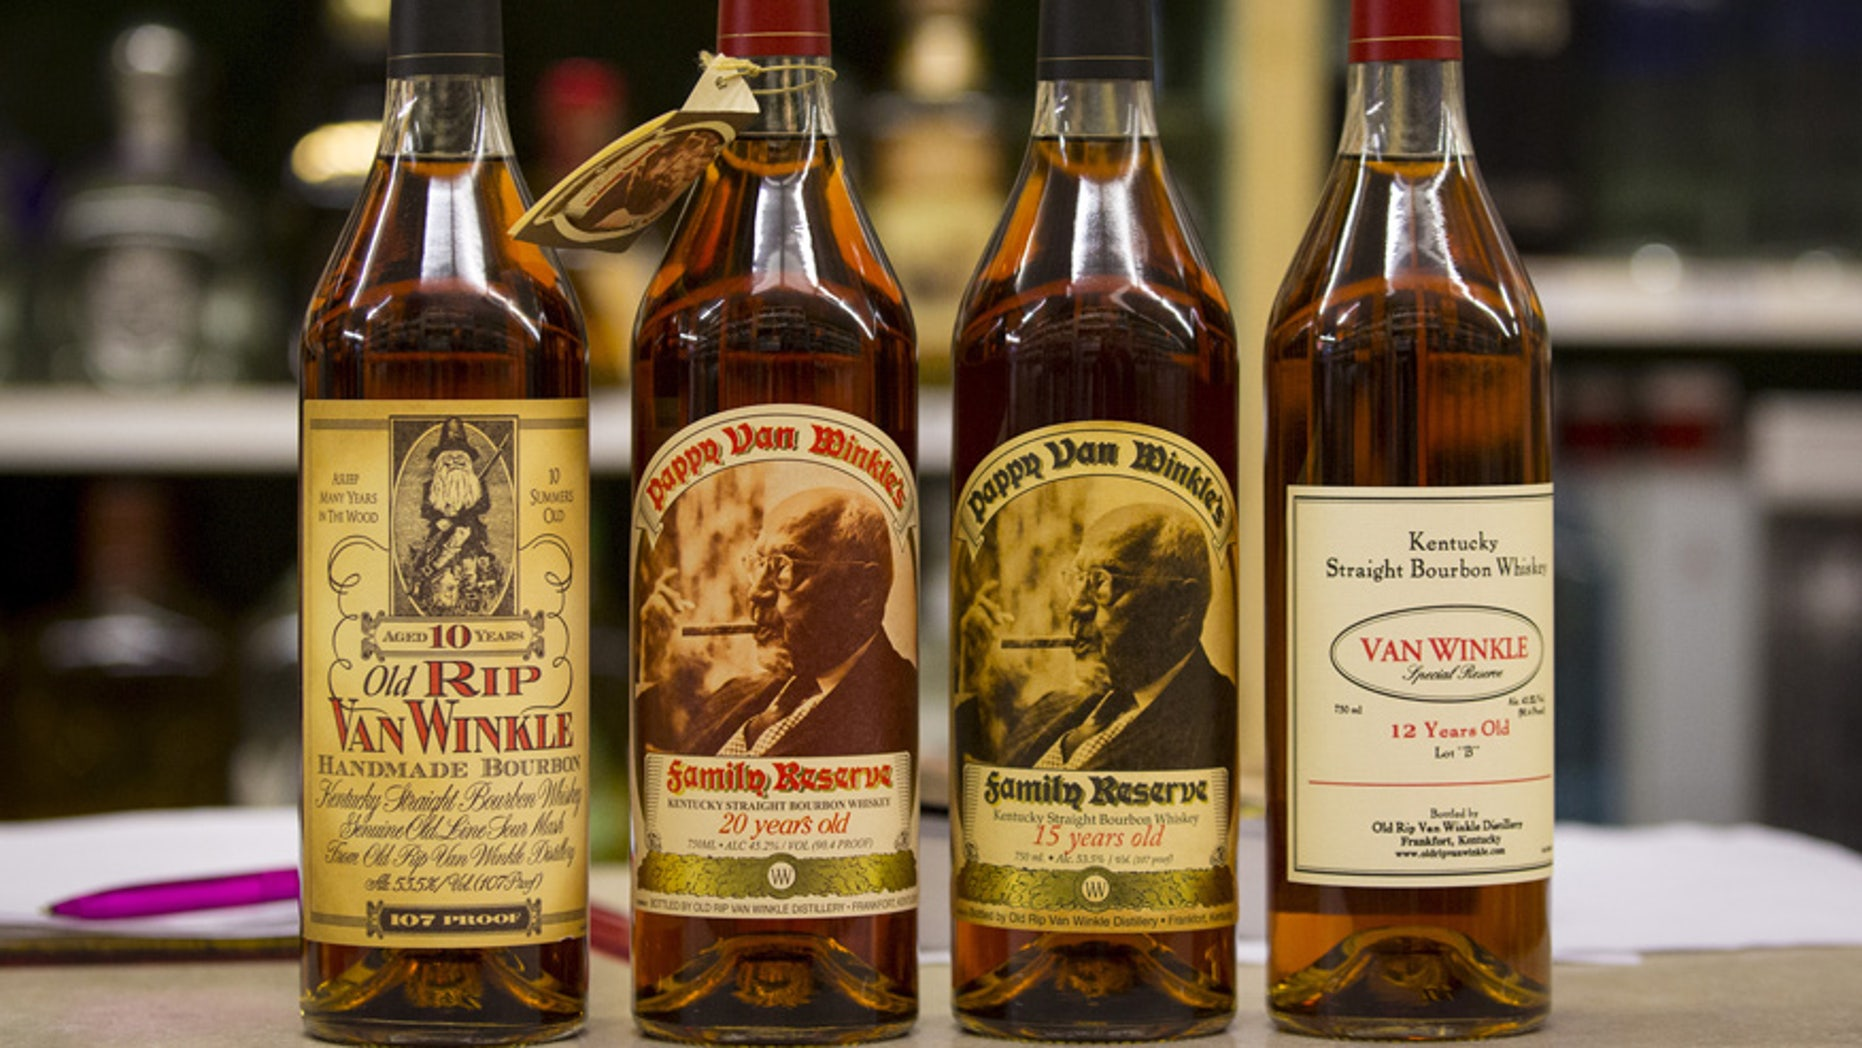 Bottles of Pappy Van Winkle are displayed in a liquor store.